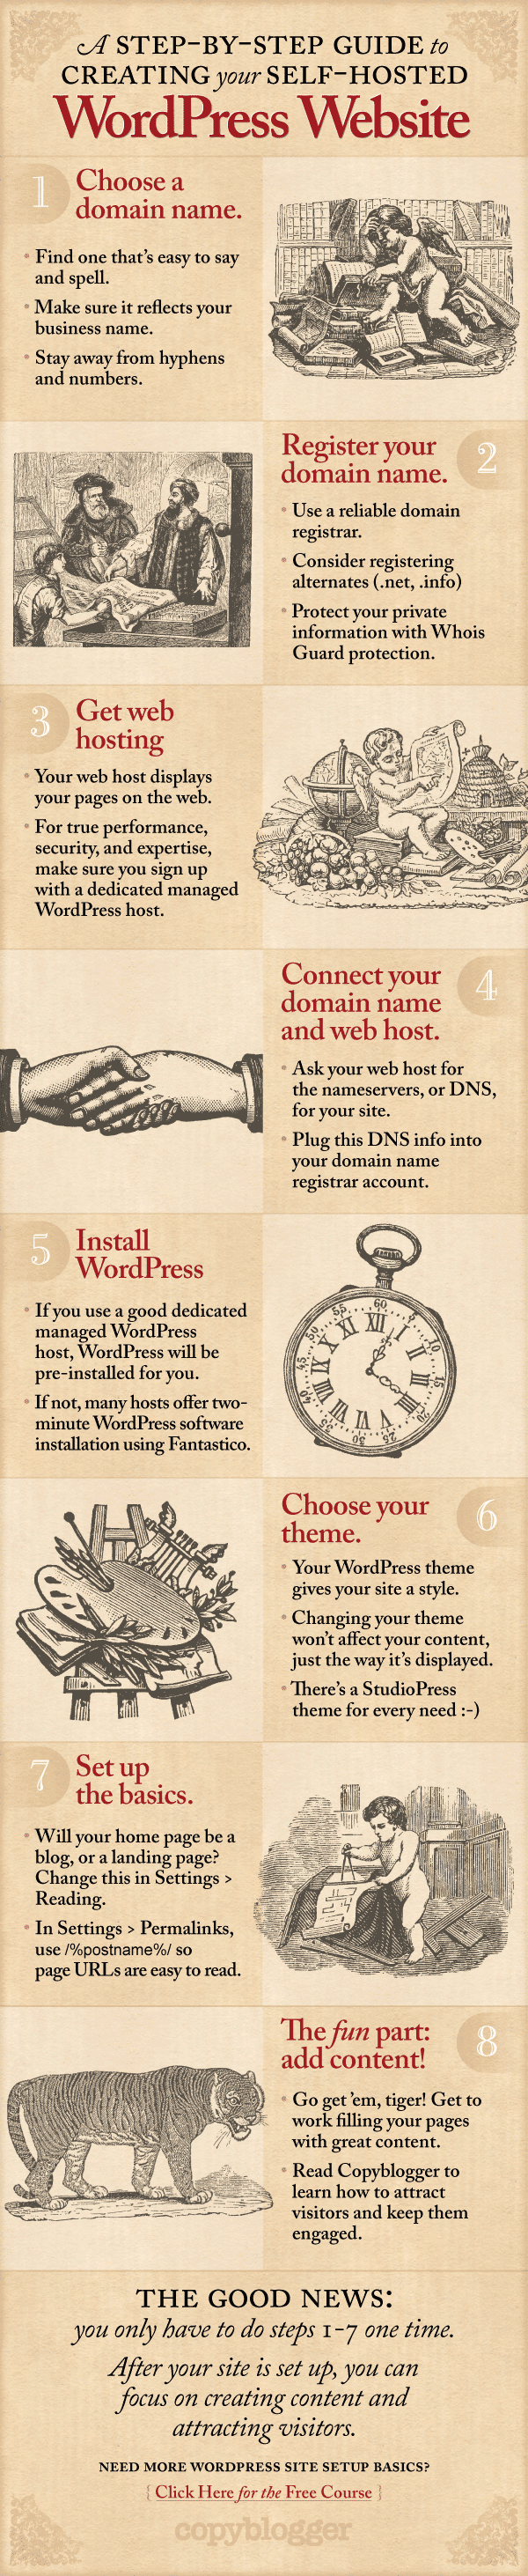 A Step-by-Step Guide to Creating Your Self-Hosted WordPress Website Infographic